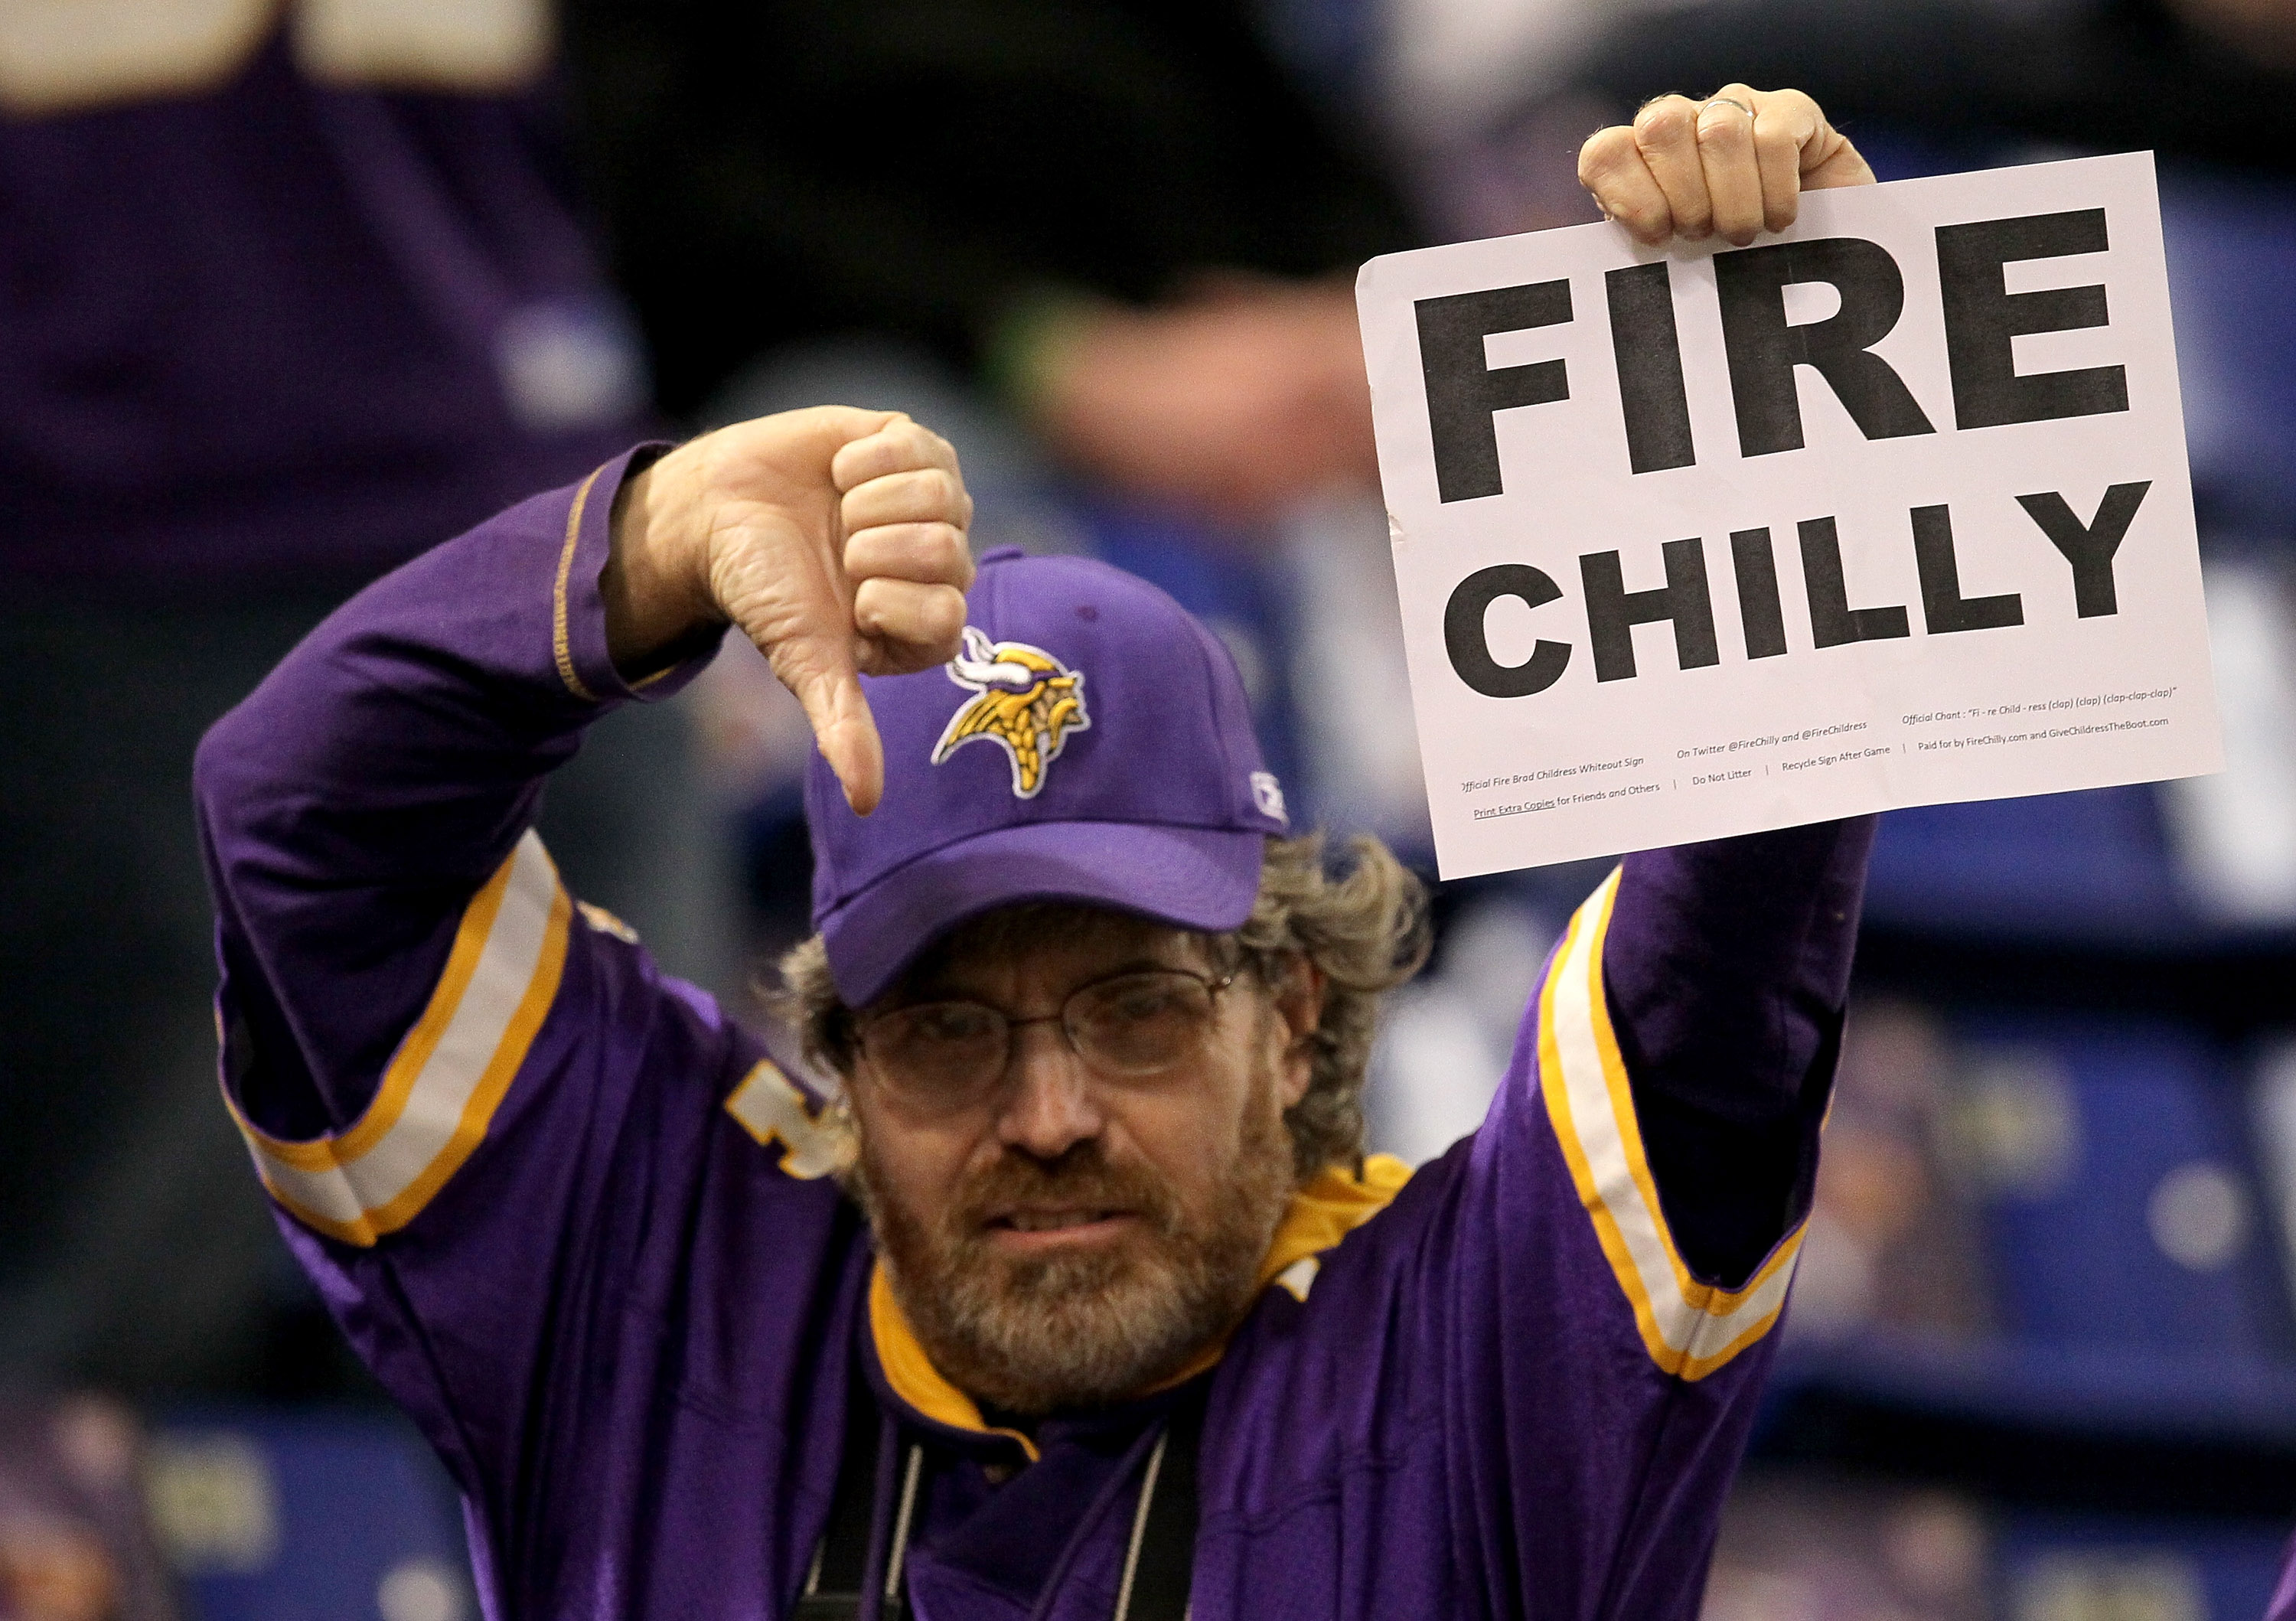 MINNEAPOLIS - NOVEMBER 07:  A Minnesota Vikings fan holds up a sign urging the firing of Vikings head coach rad Childress before the game with the Arizona Cardinals at Hubert H. Humphrey Metrodome on November 7, 2010 in Minneapolis, Minnesota.  (Photo by